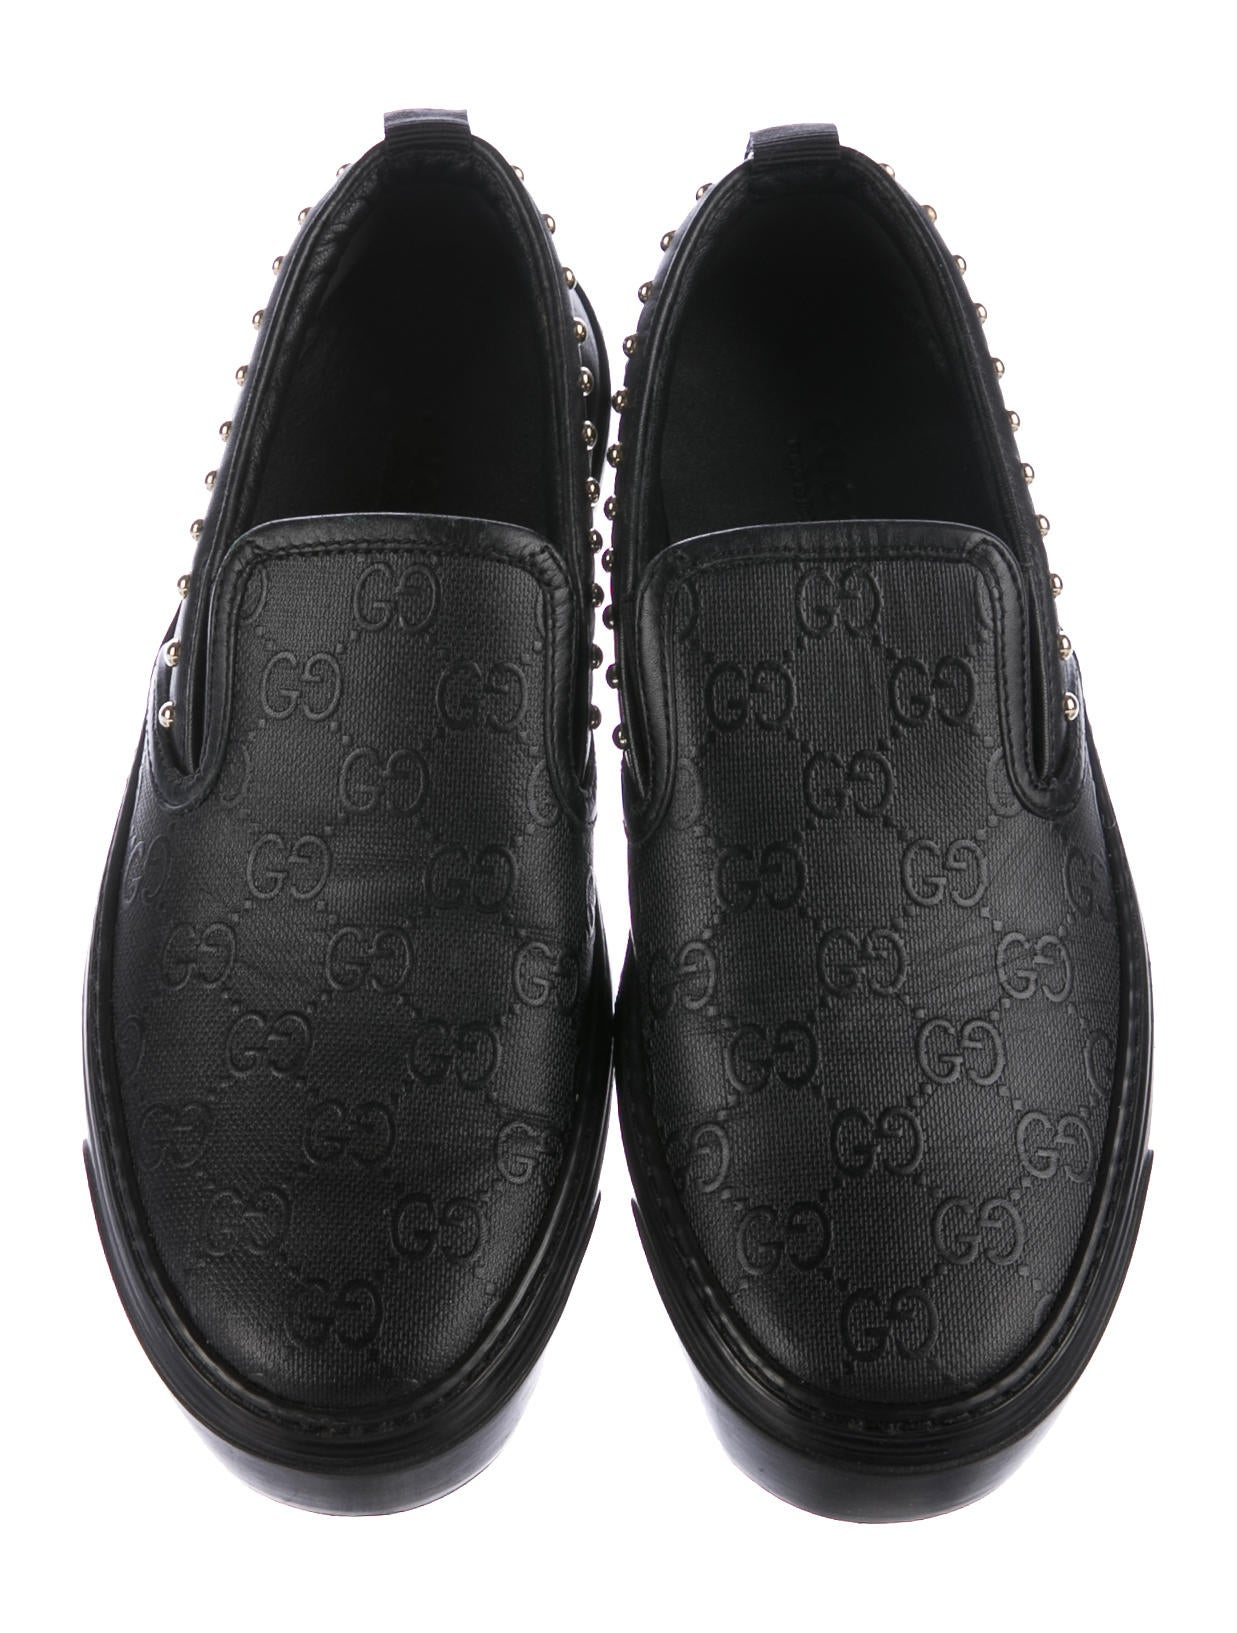 Gucci Guccissima Slip-On Sneakers - Shoes - GUC165065 | The RealReal